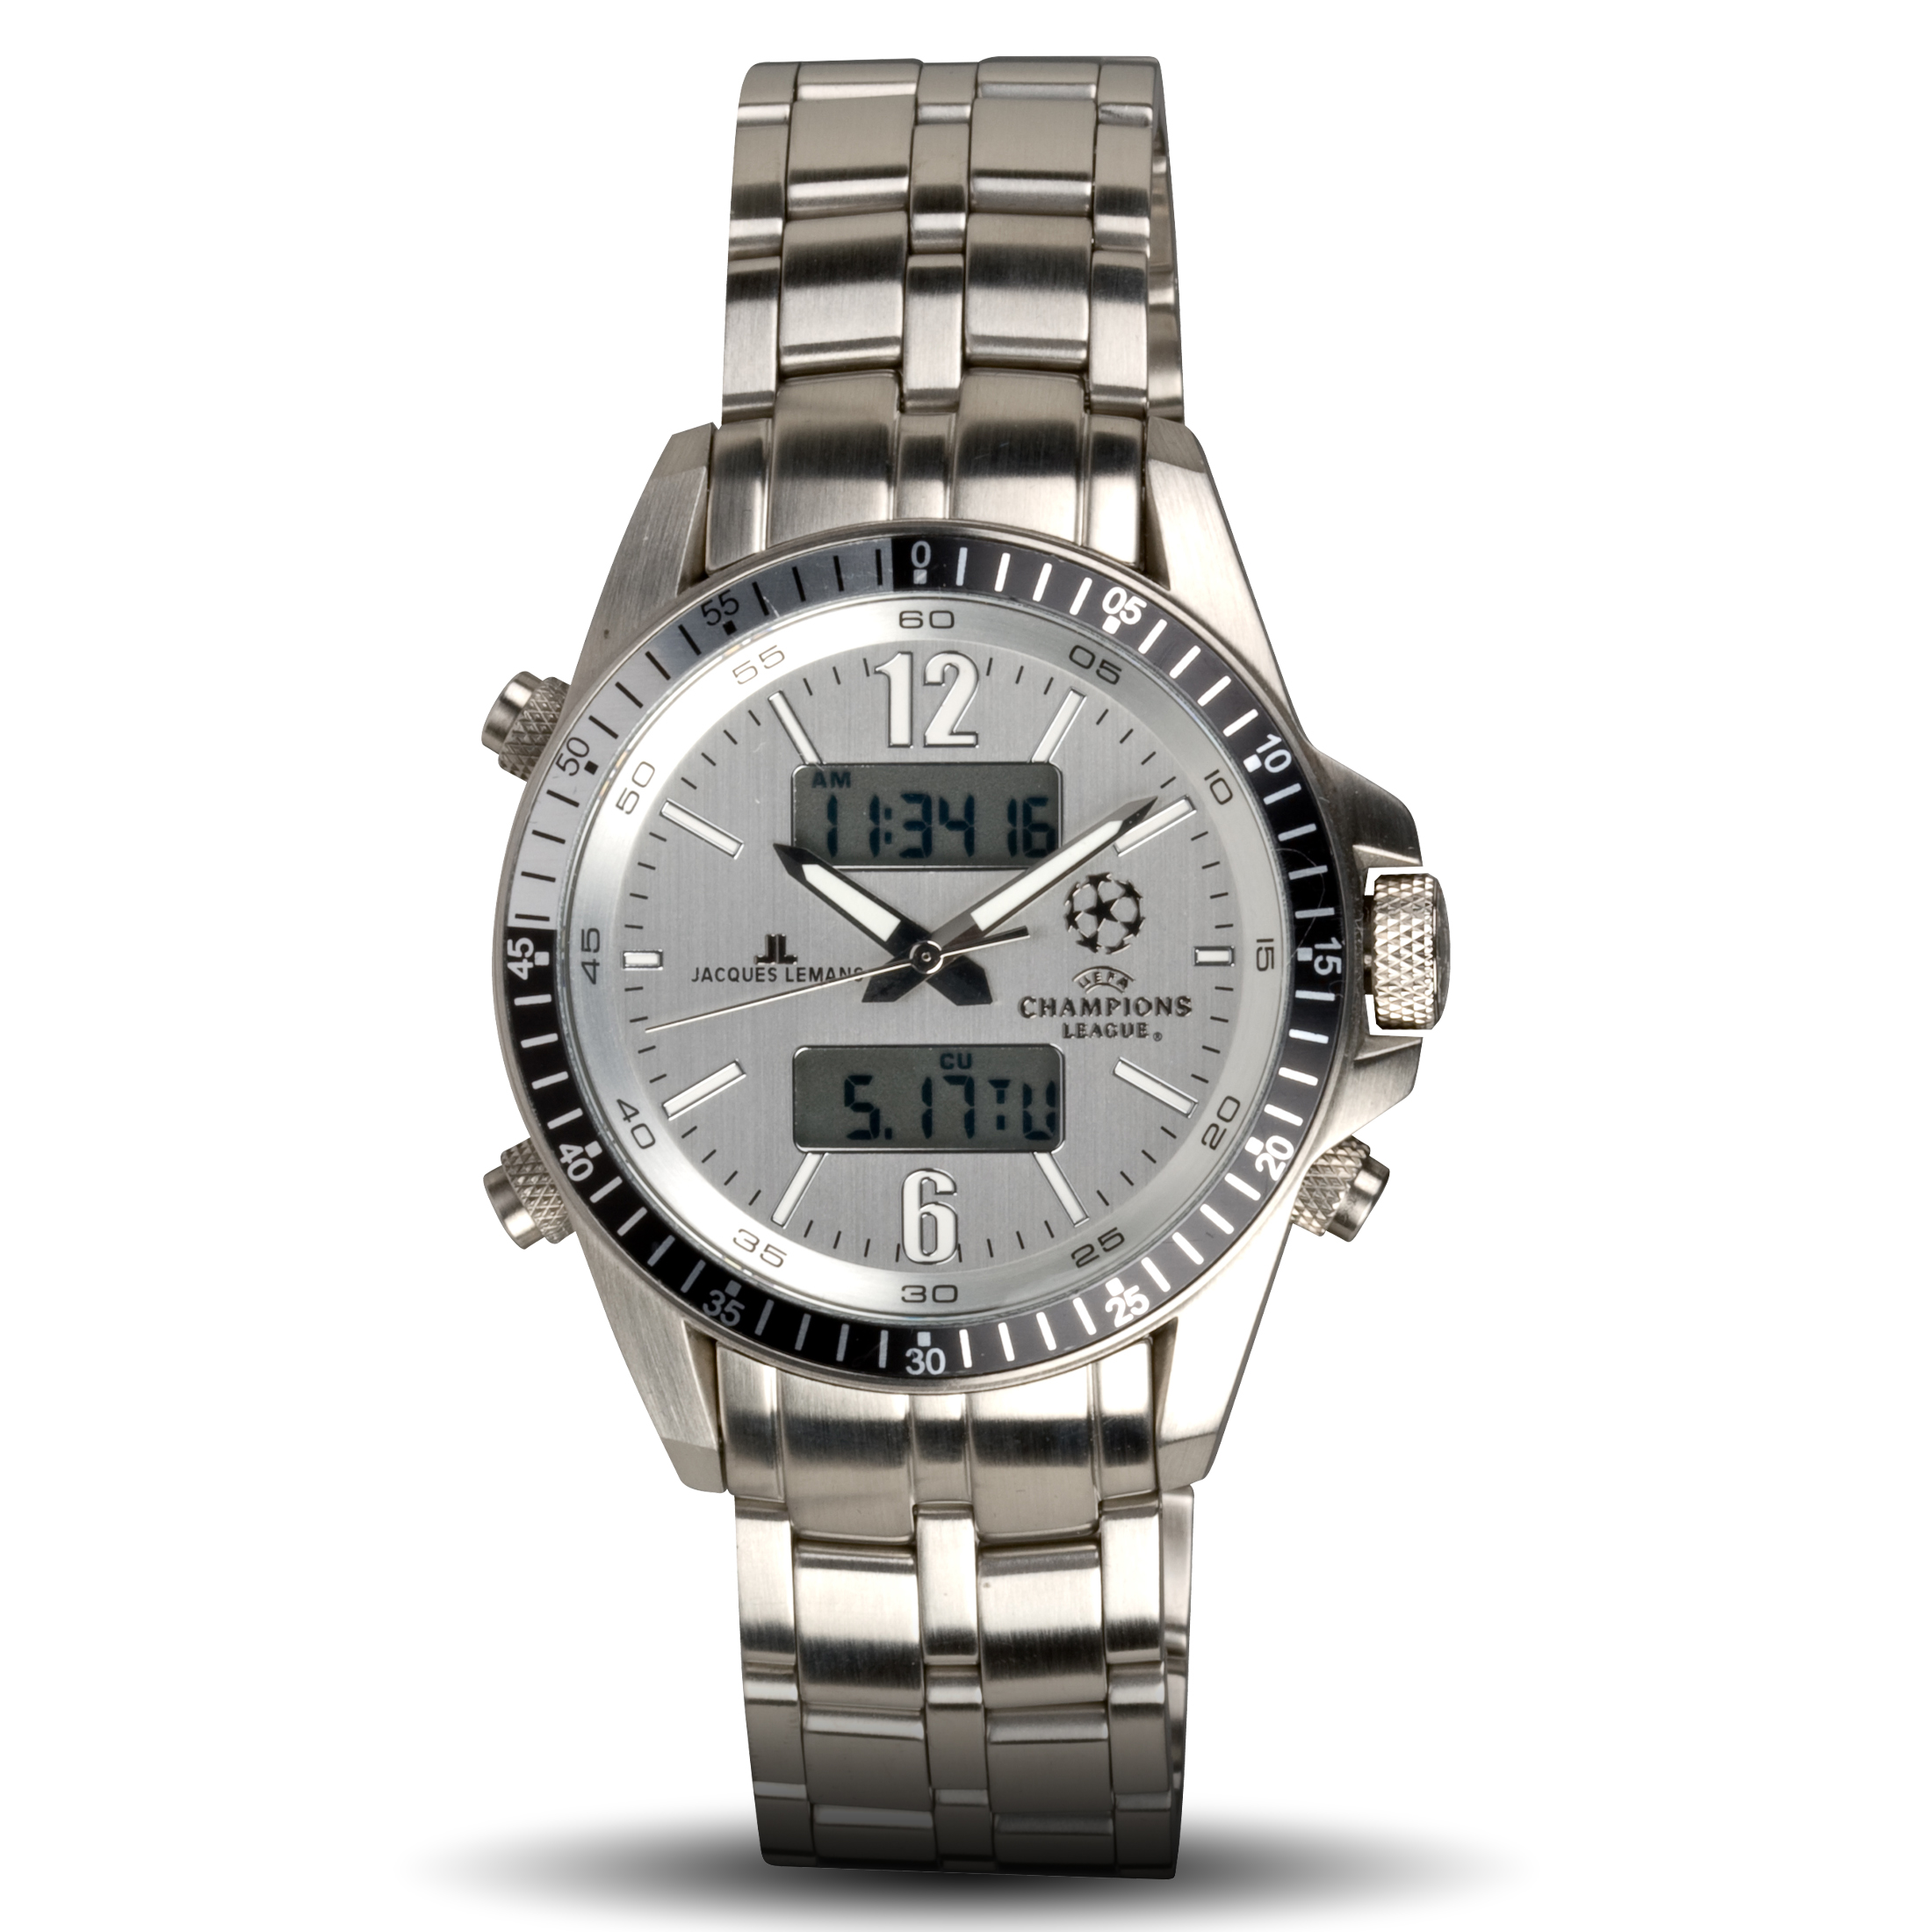 UEFA Champions League Dual Time Stainless Steel Watch - Silver